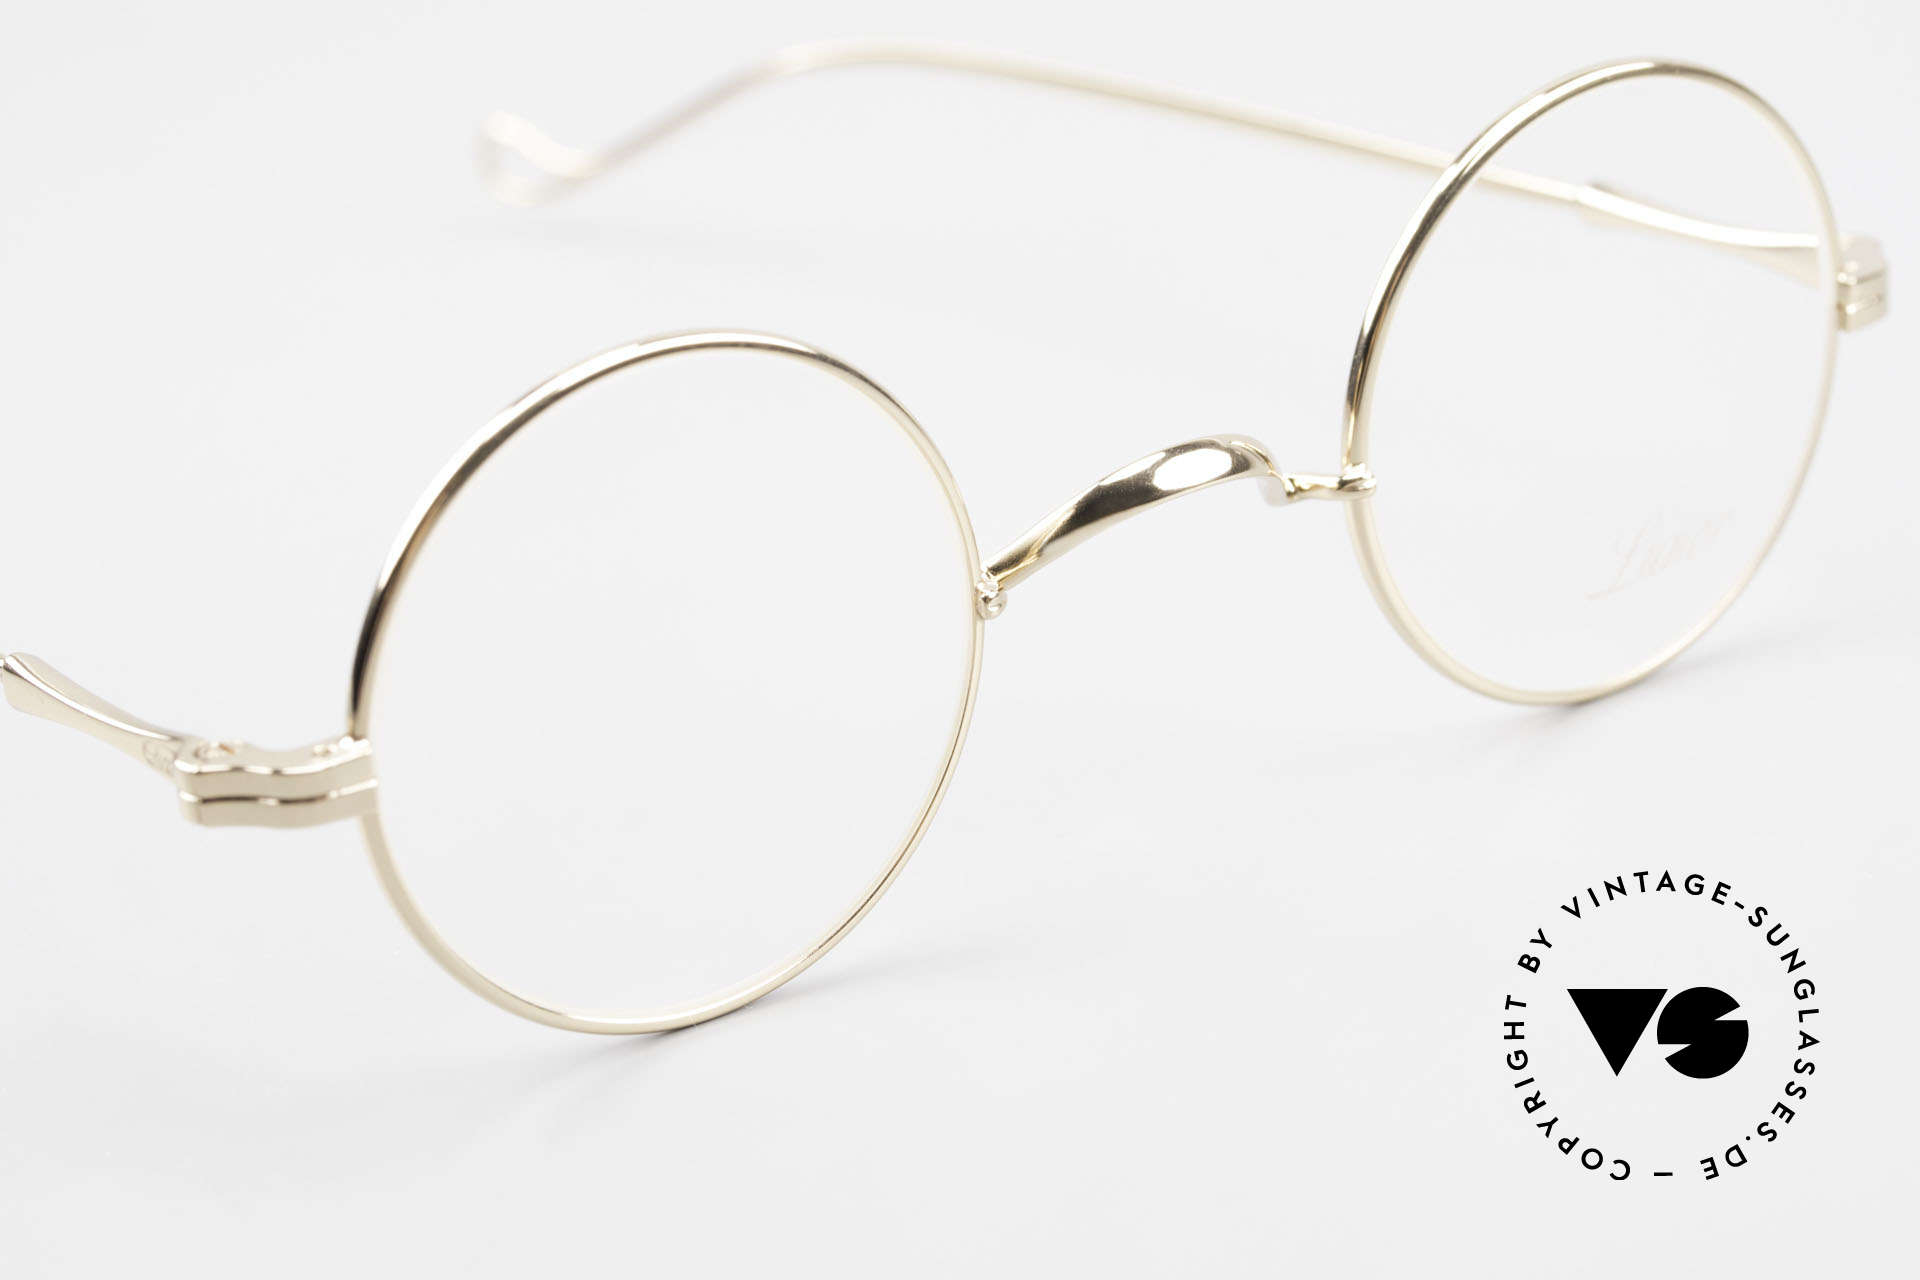 Lunor II 12 Small Round Gold Glasses, unworn rarity for all lovers of quality from the late 90s, Made for Men and Women